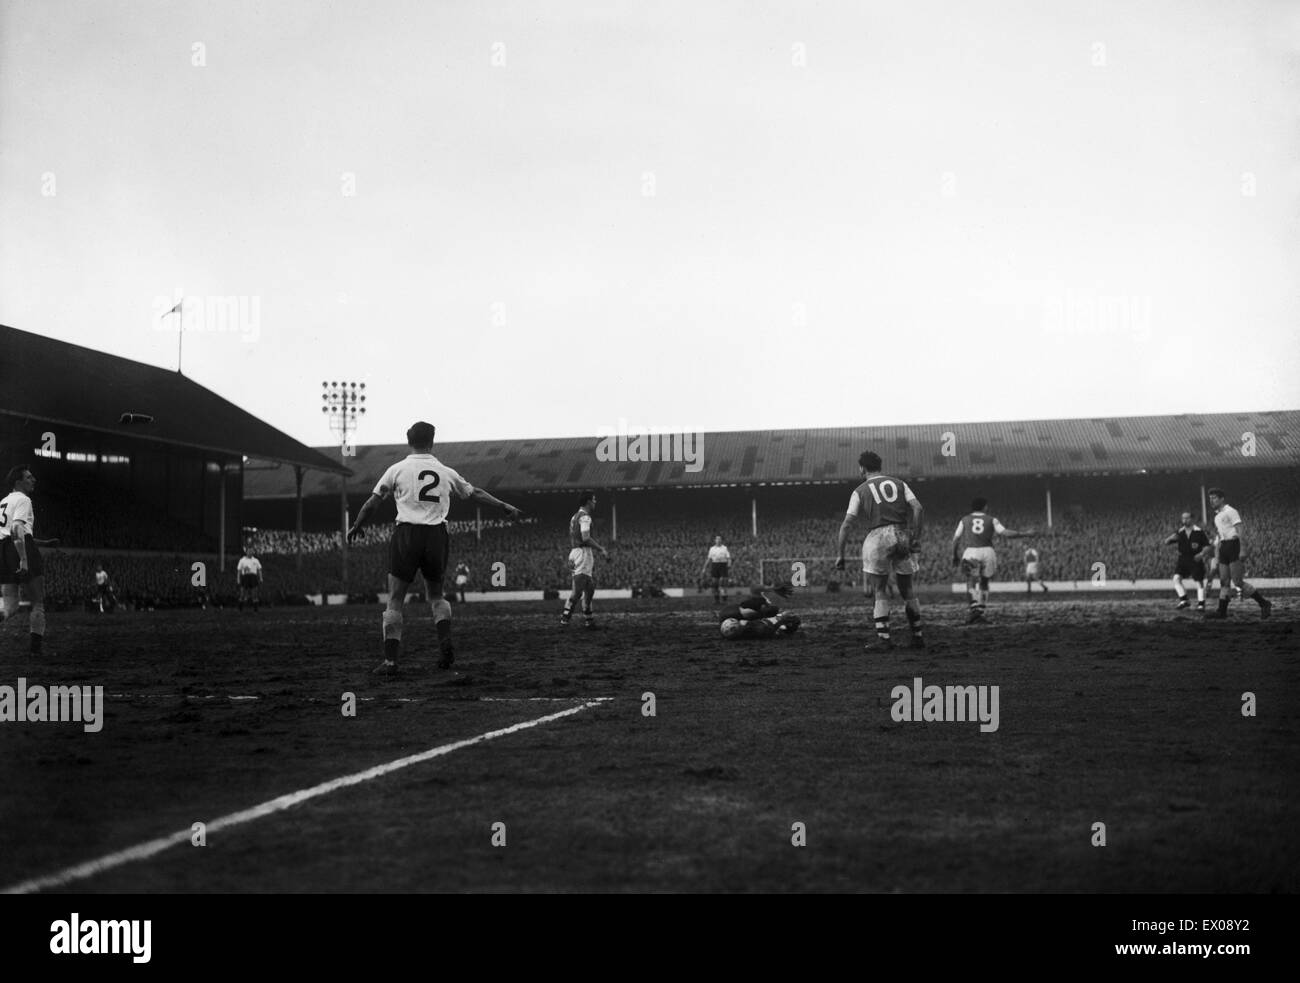 Tottenham 1-4 Arsenal, League Division One match at White Hart Lane, Saturday 31st January 1959. This is the dramatic Stock Photo